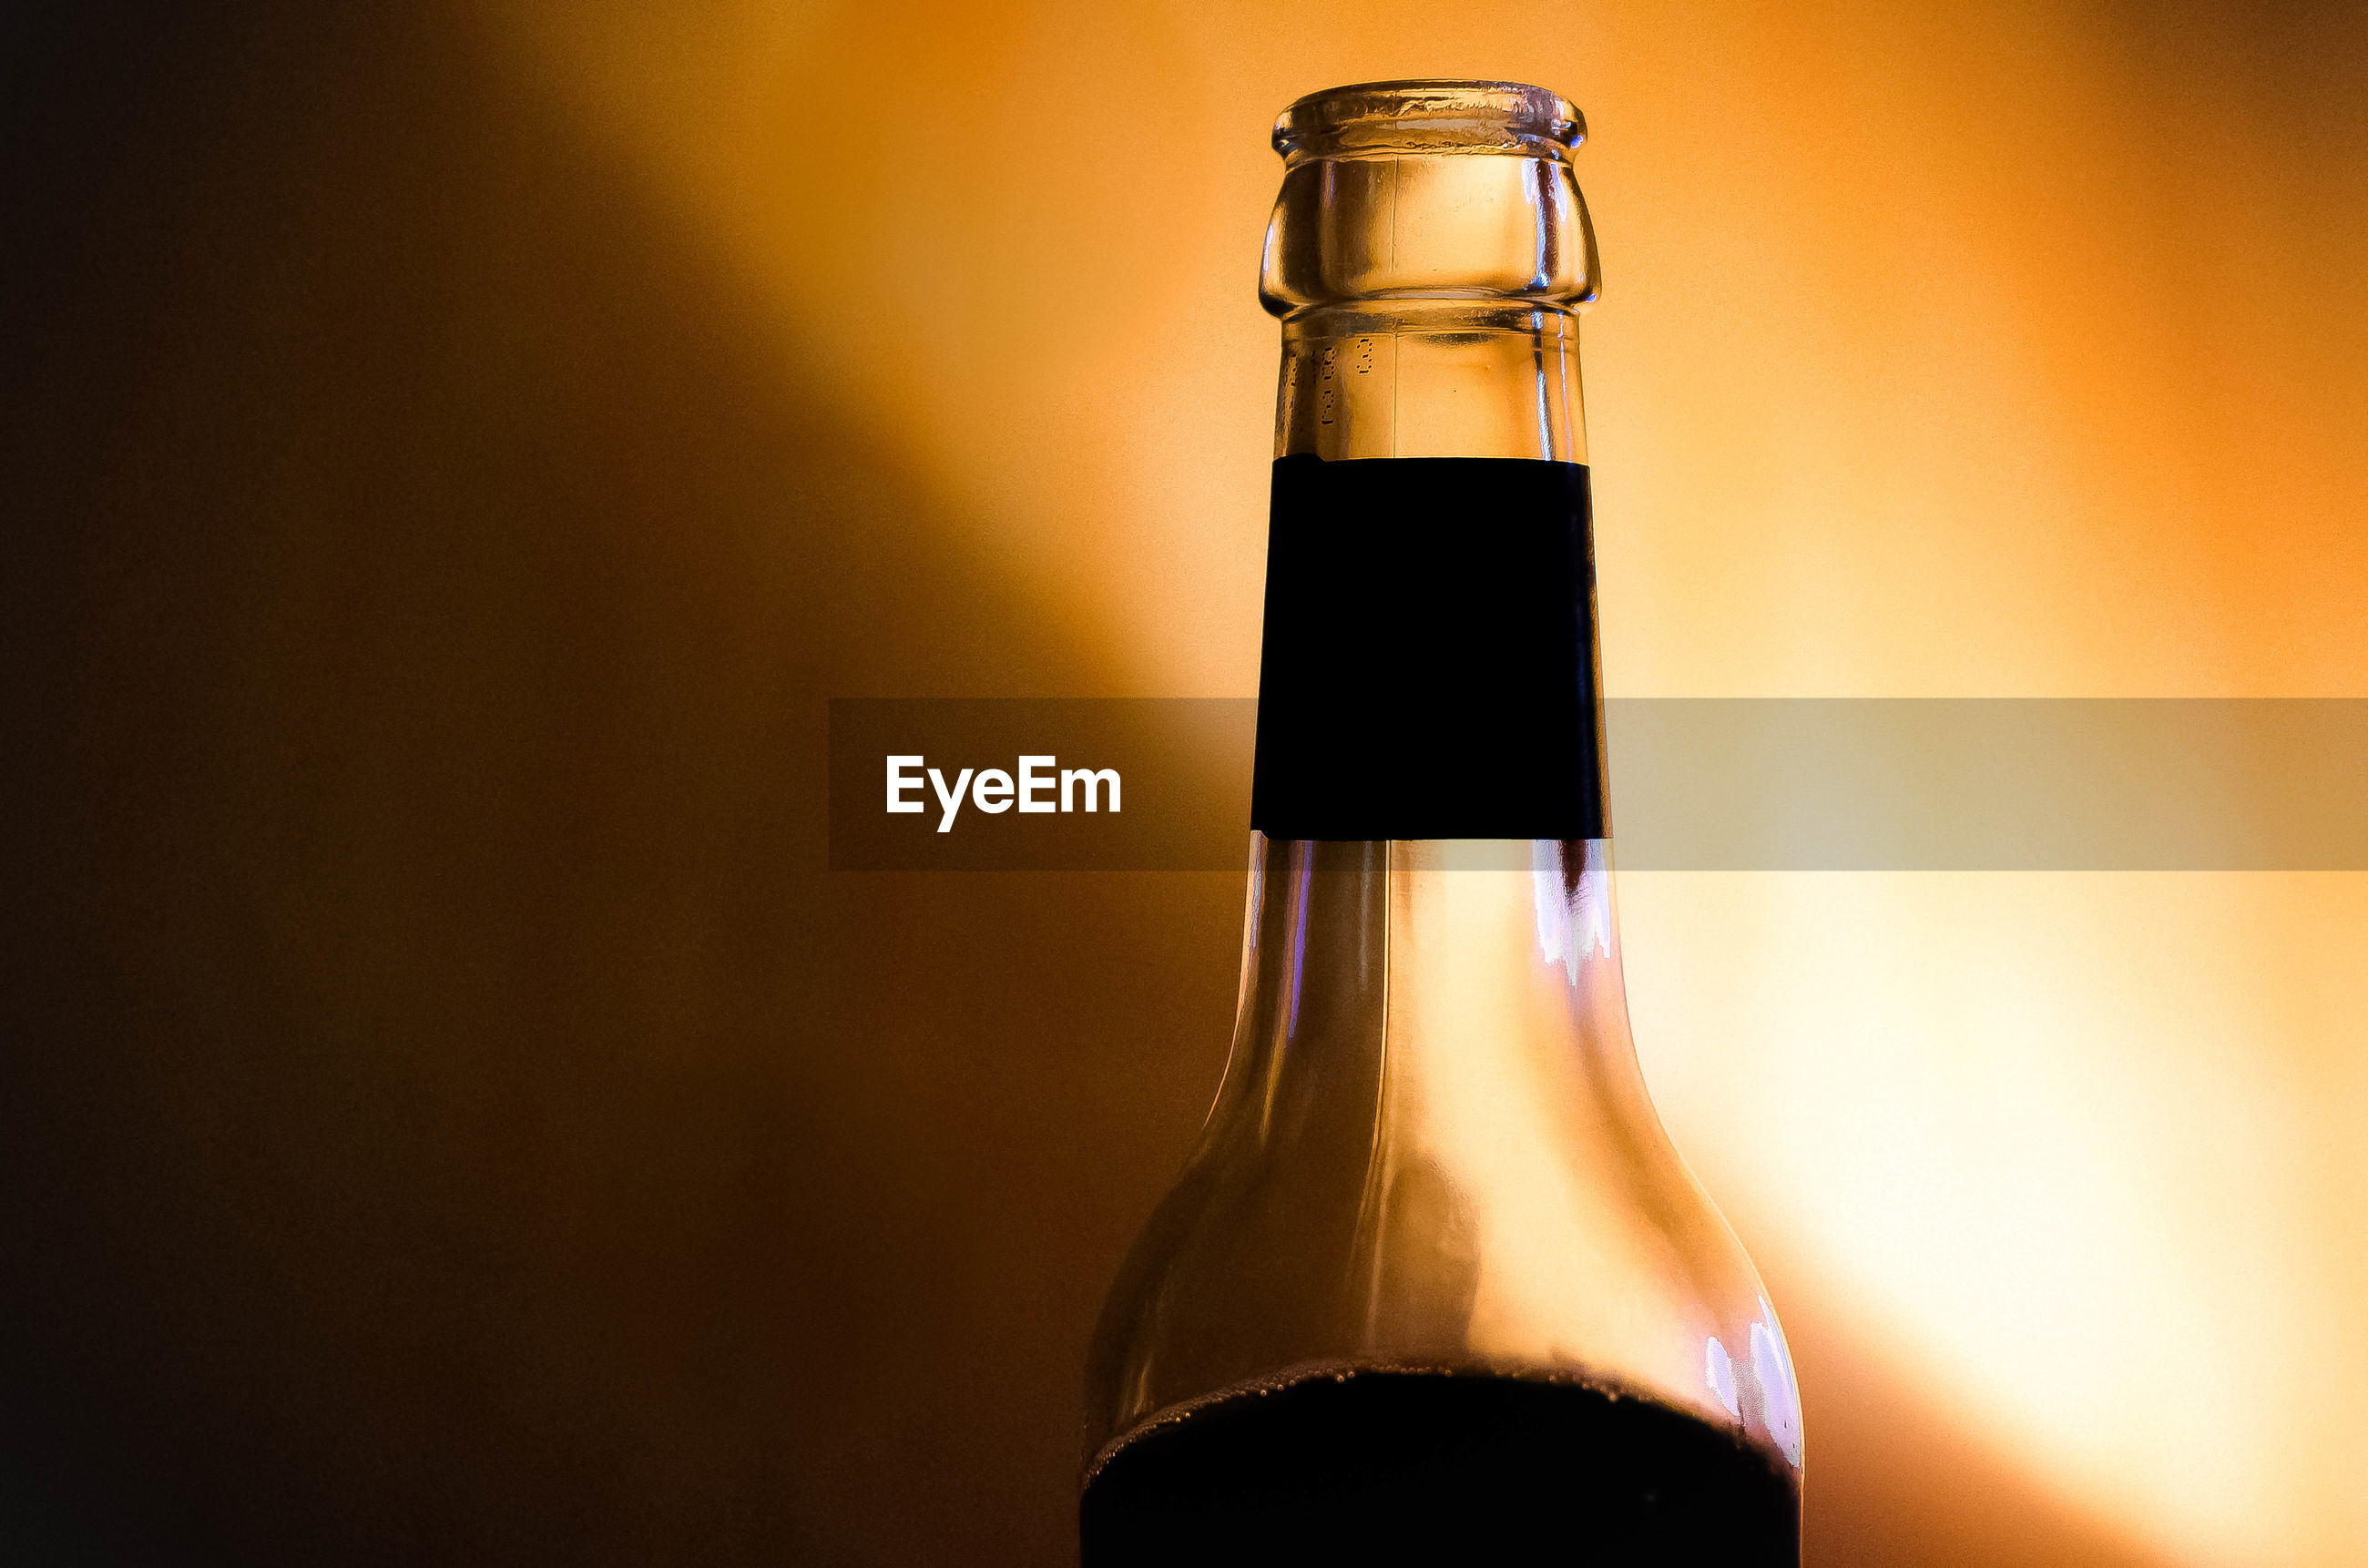 CLOSE-UP OF BEER GLASS BOTTLE AGAINST GRAY BACKGROUND